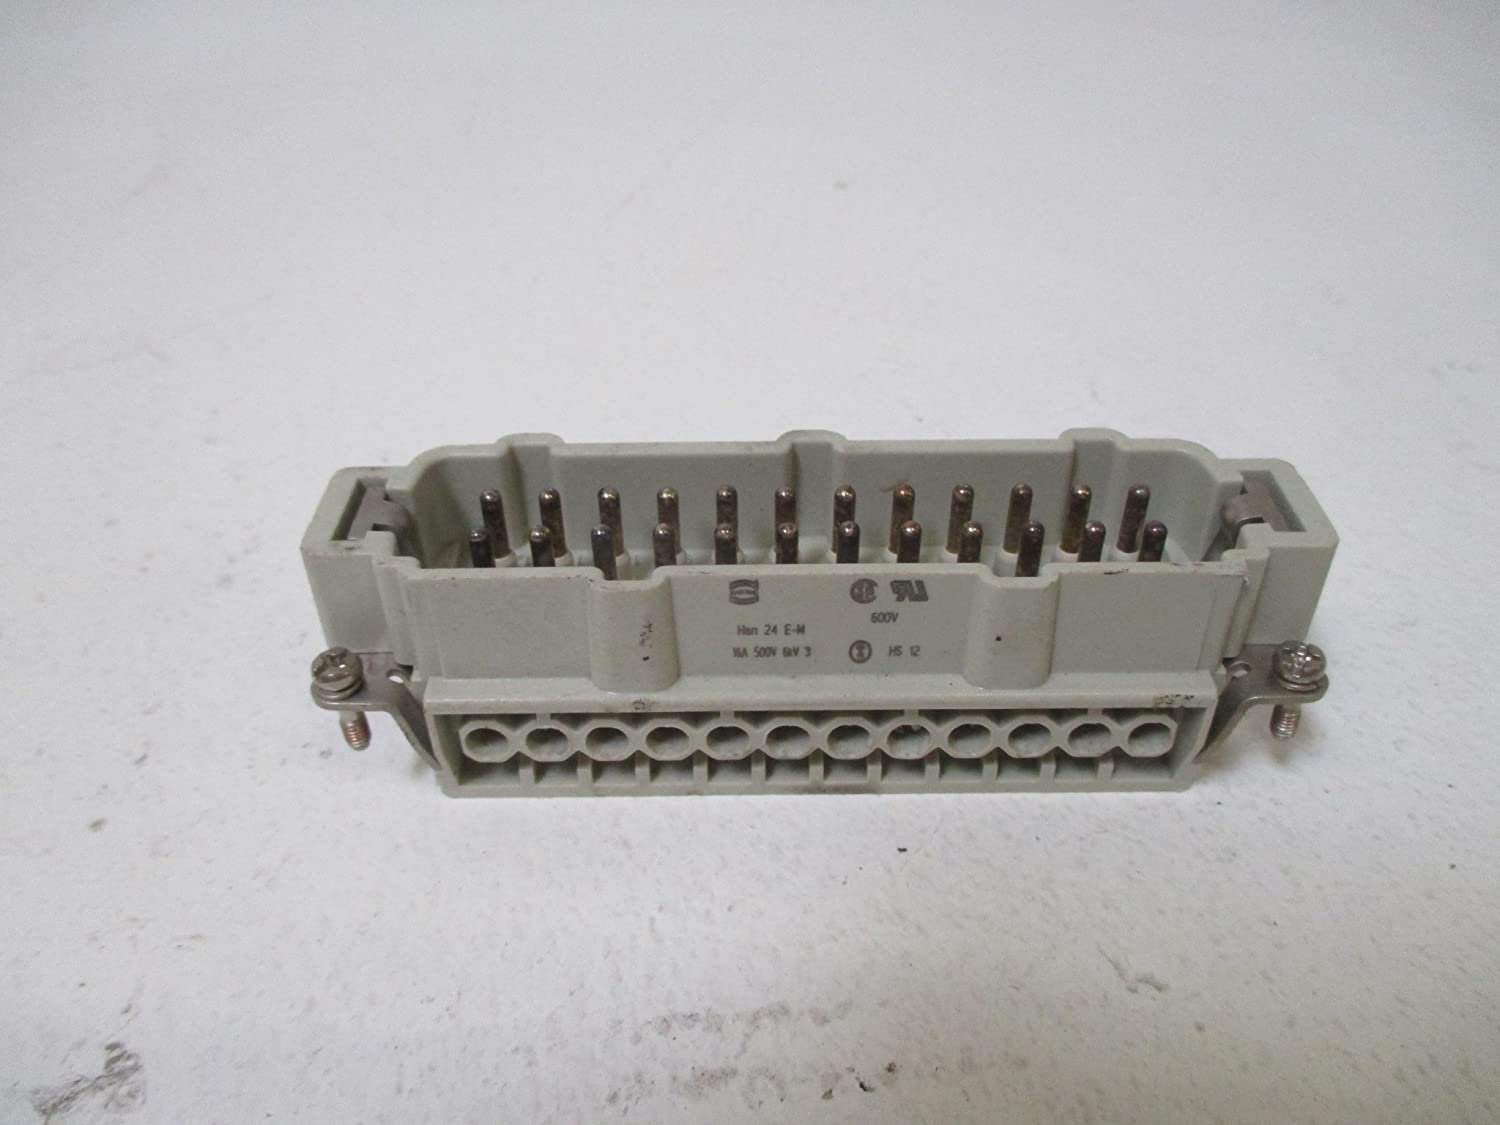 Harting HAN 24E-M 24 Pin Connector 15A 500V  USED